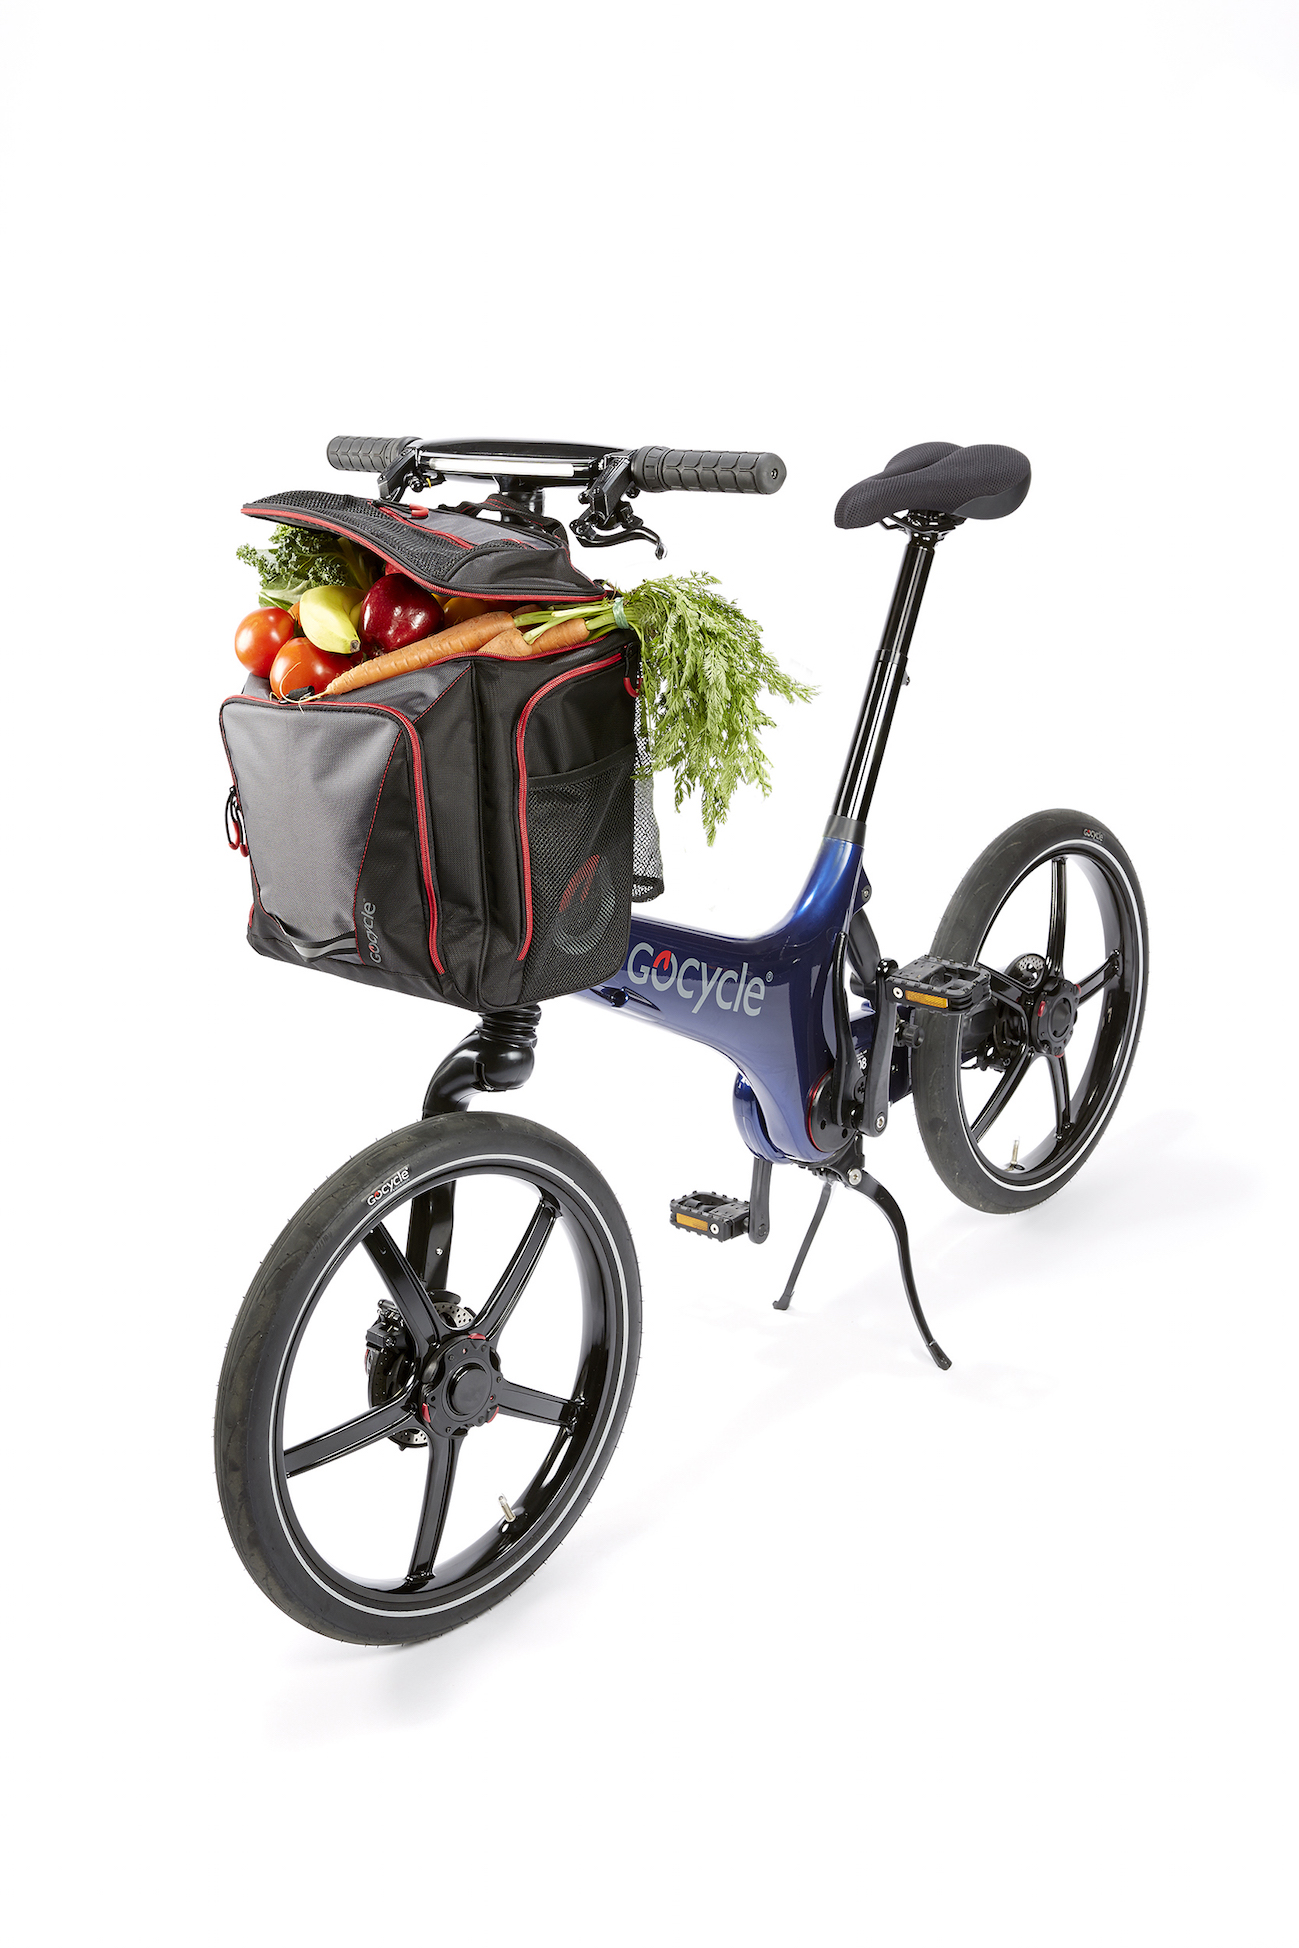 New Gocycle Accessory Electric Bike News Reviews And